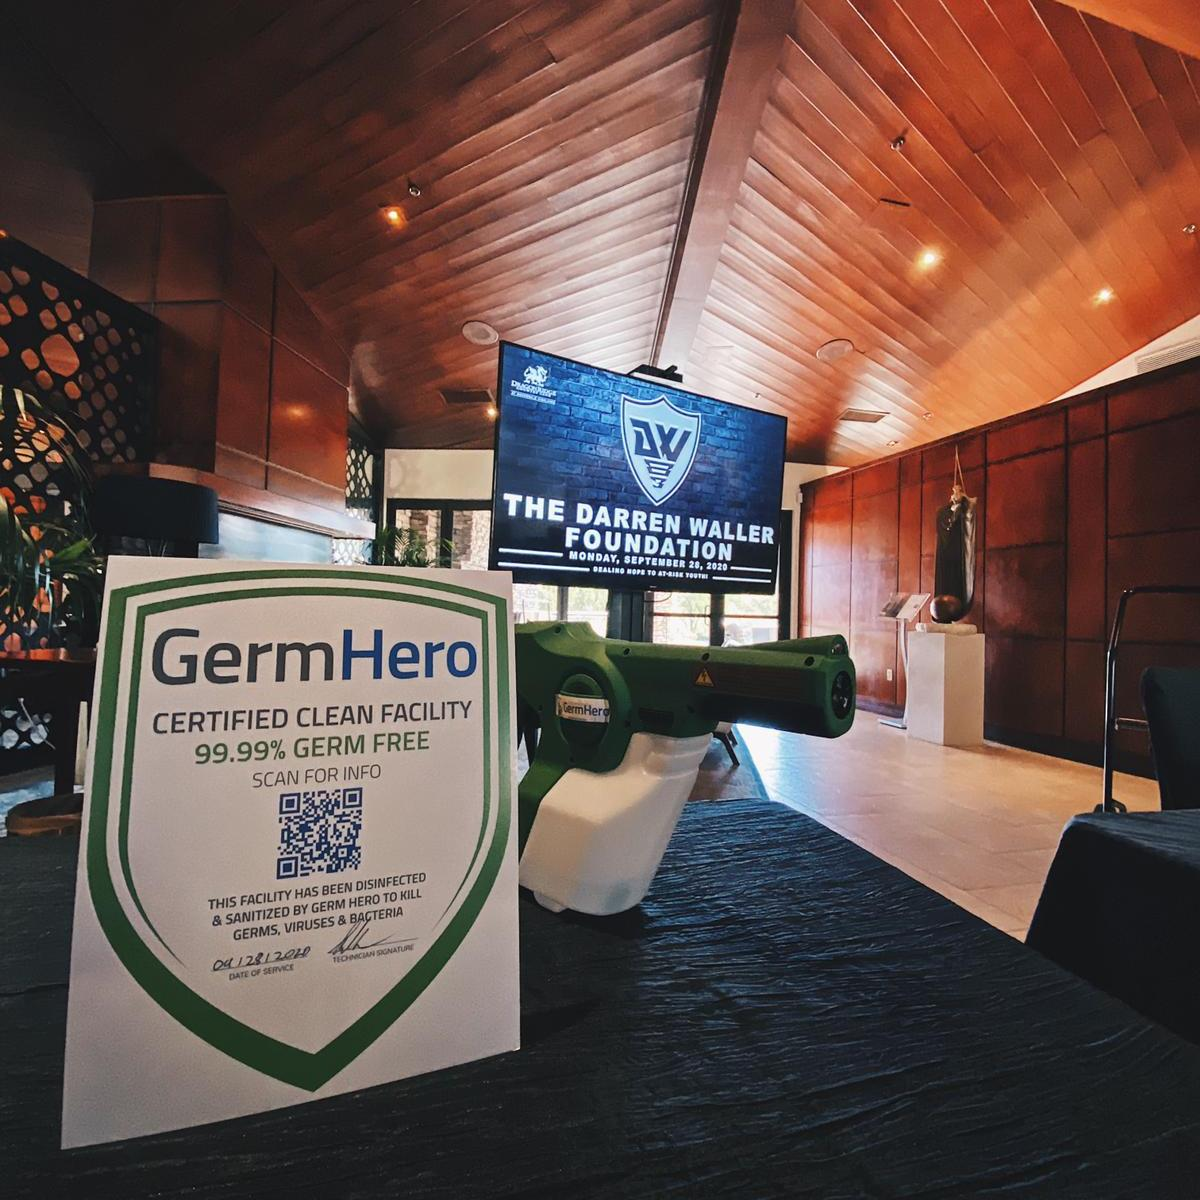 Germ Hero Verified Shield at the Dragon Ridge Country Club for Darren Waller Foundation Beyond the Wall Fundraiser Gala